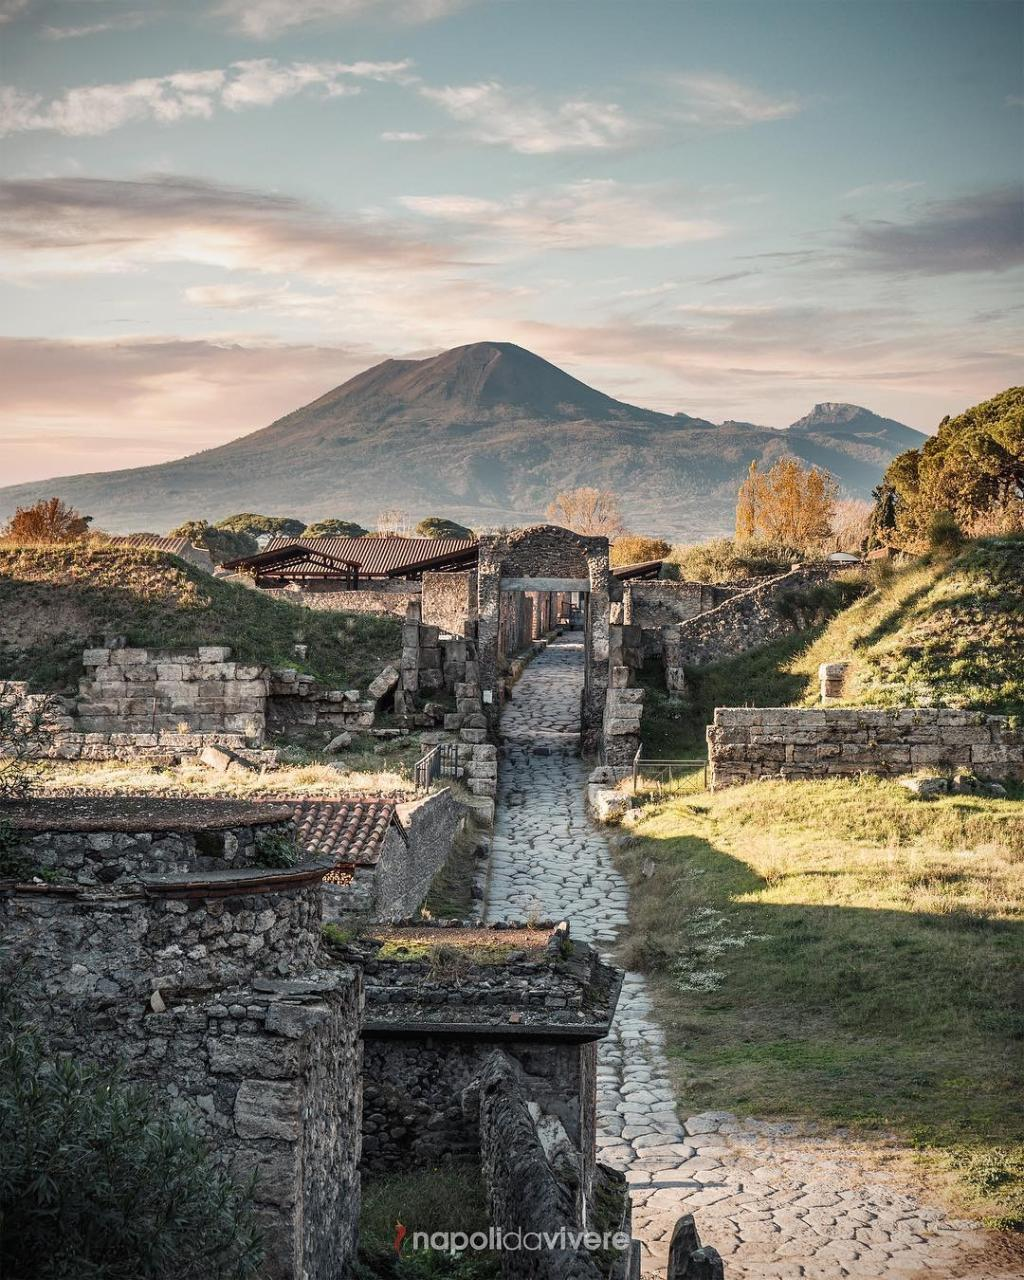 Pompeii and Vesuvius sightseeing Day Excursion from Rome